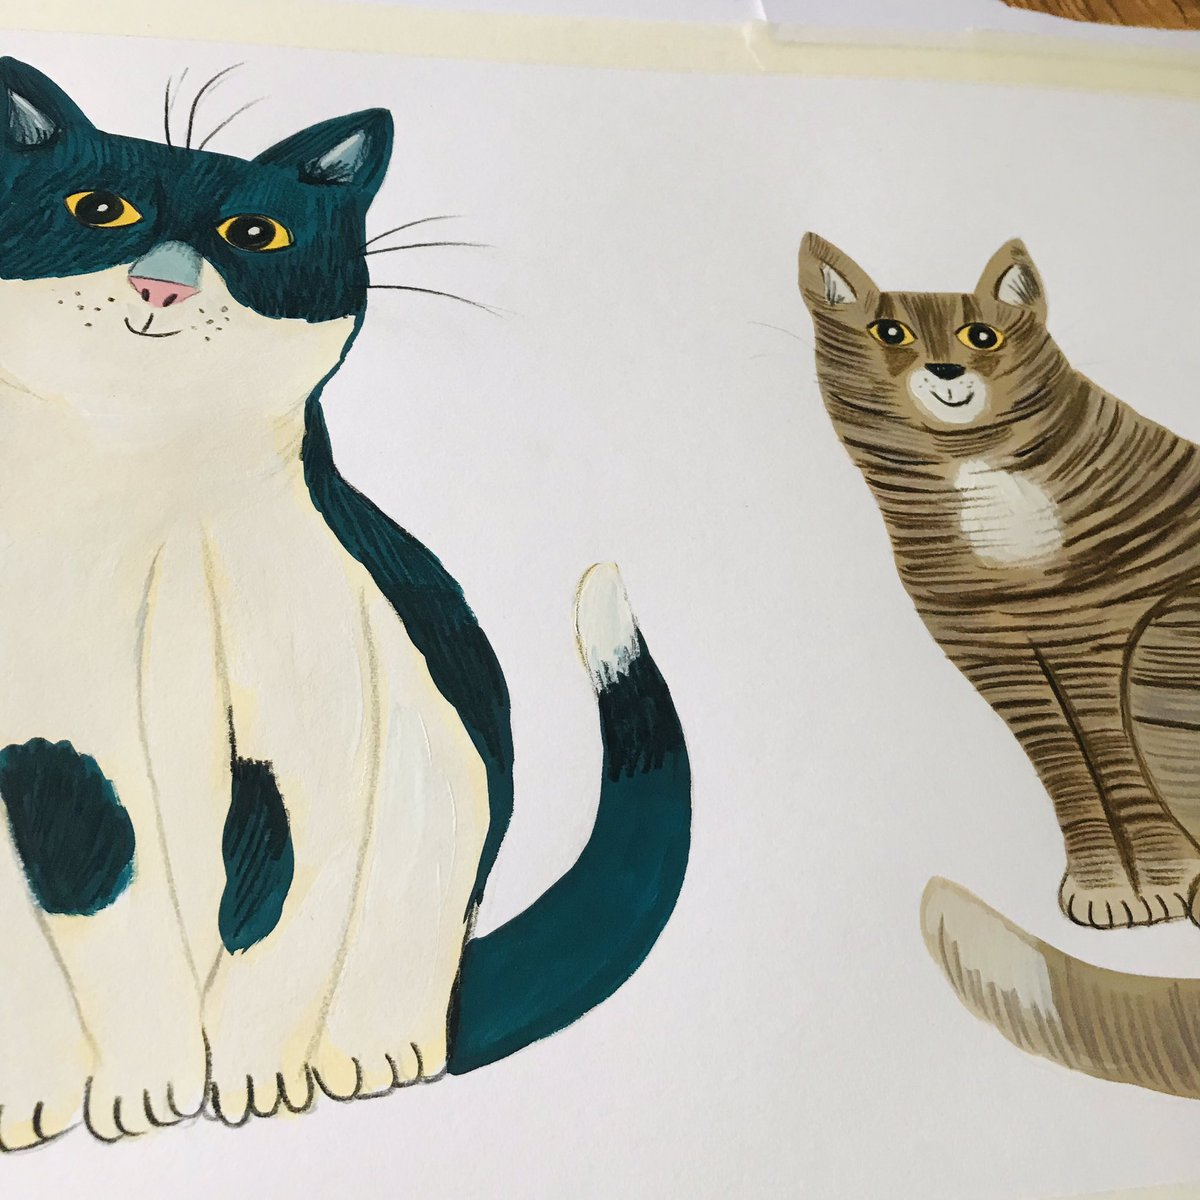 #wip am painting cats today for a fab new project ^..^ #cats #illustrations #onmydesk #gouache #catpic.twitter.com/DVllOu4WxZ